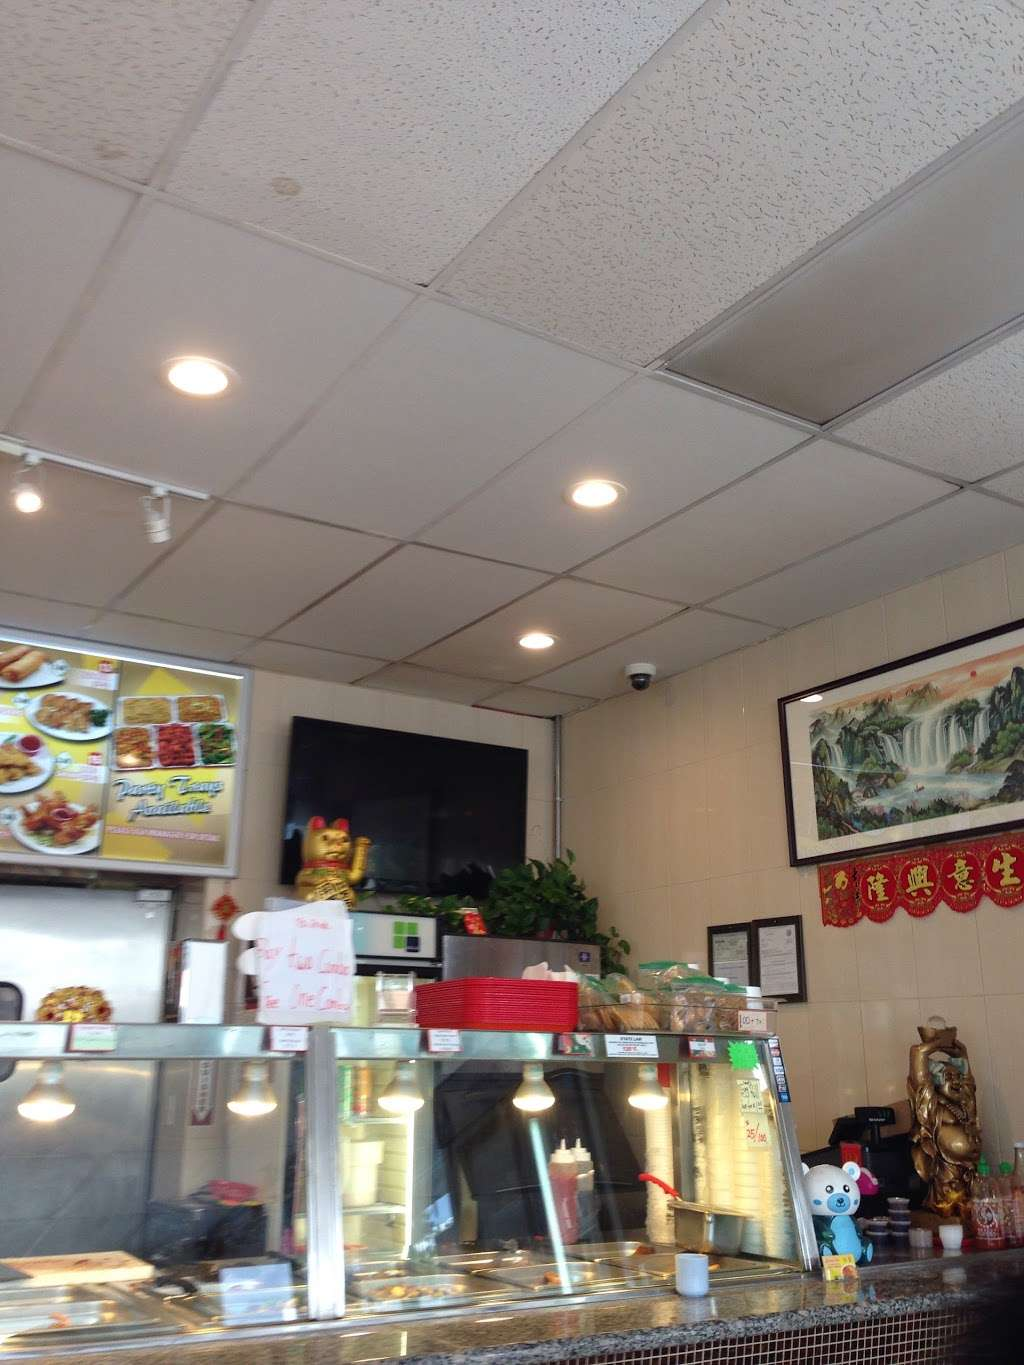 Jumbo Chinese Food - restaurant  | Photo 2 of 3 | Address: 1391 N Hacienda Blvd, La Puente, CA 91744, USA | Phone: (626) 917-8887